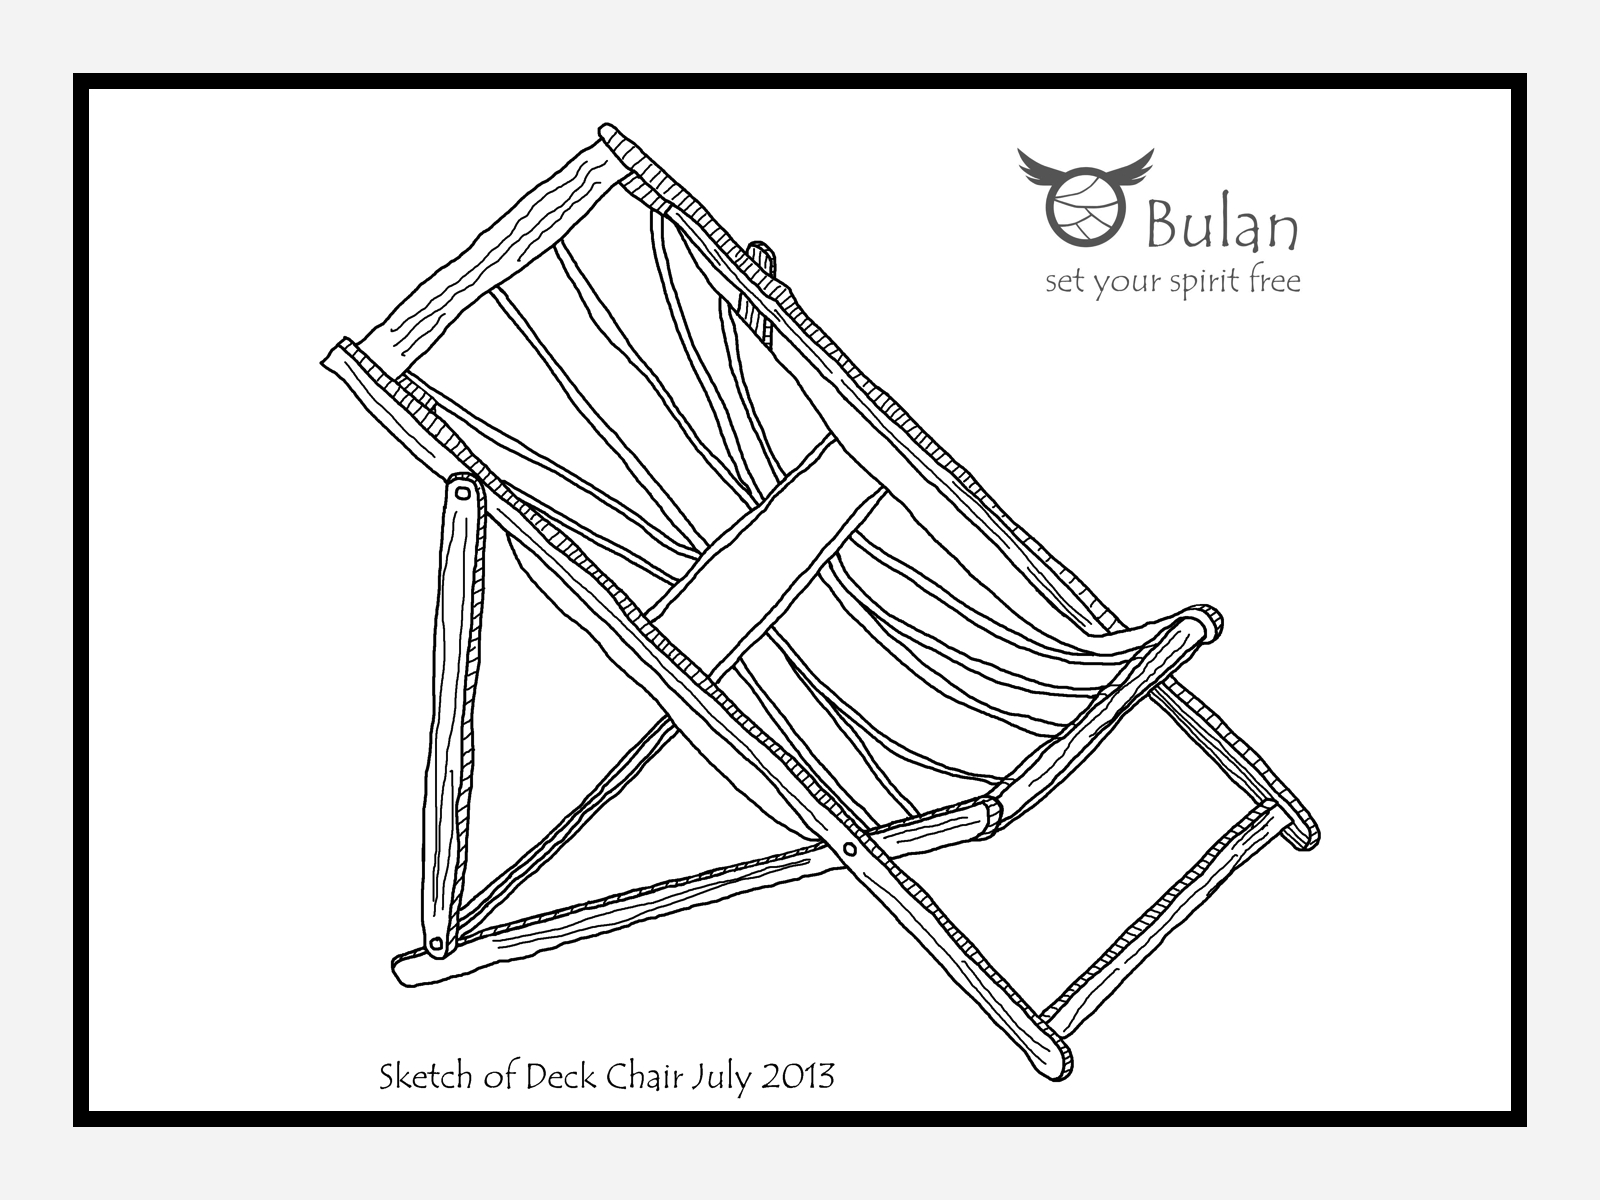 Deck Chairs Drawing Sketch of Deck Chair